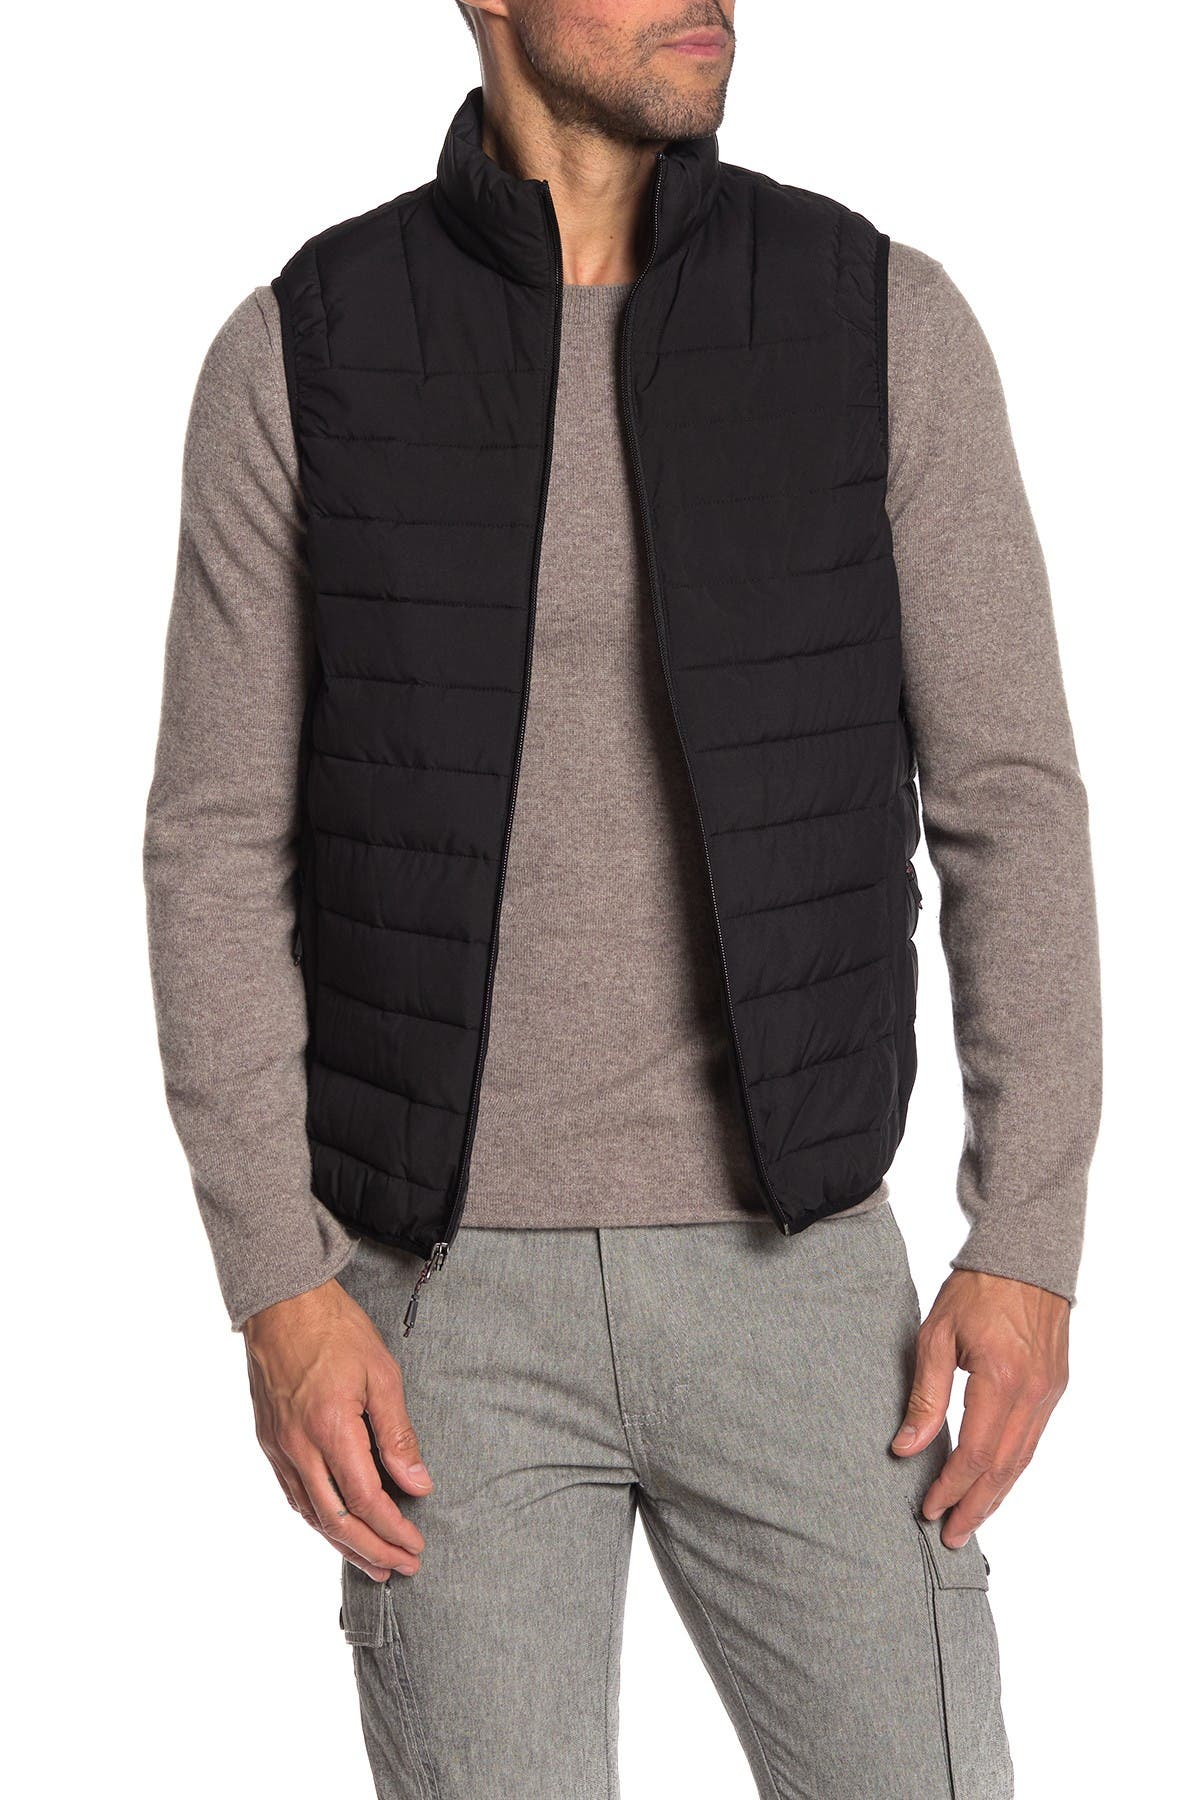 Image of Hawke & Co. Solid Stretch Puffer Vest